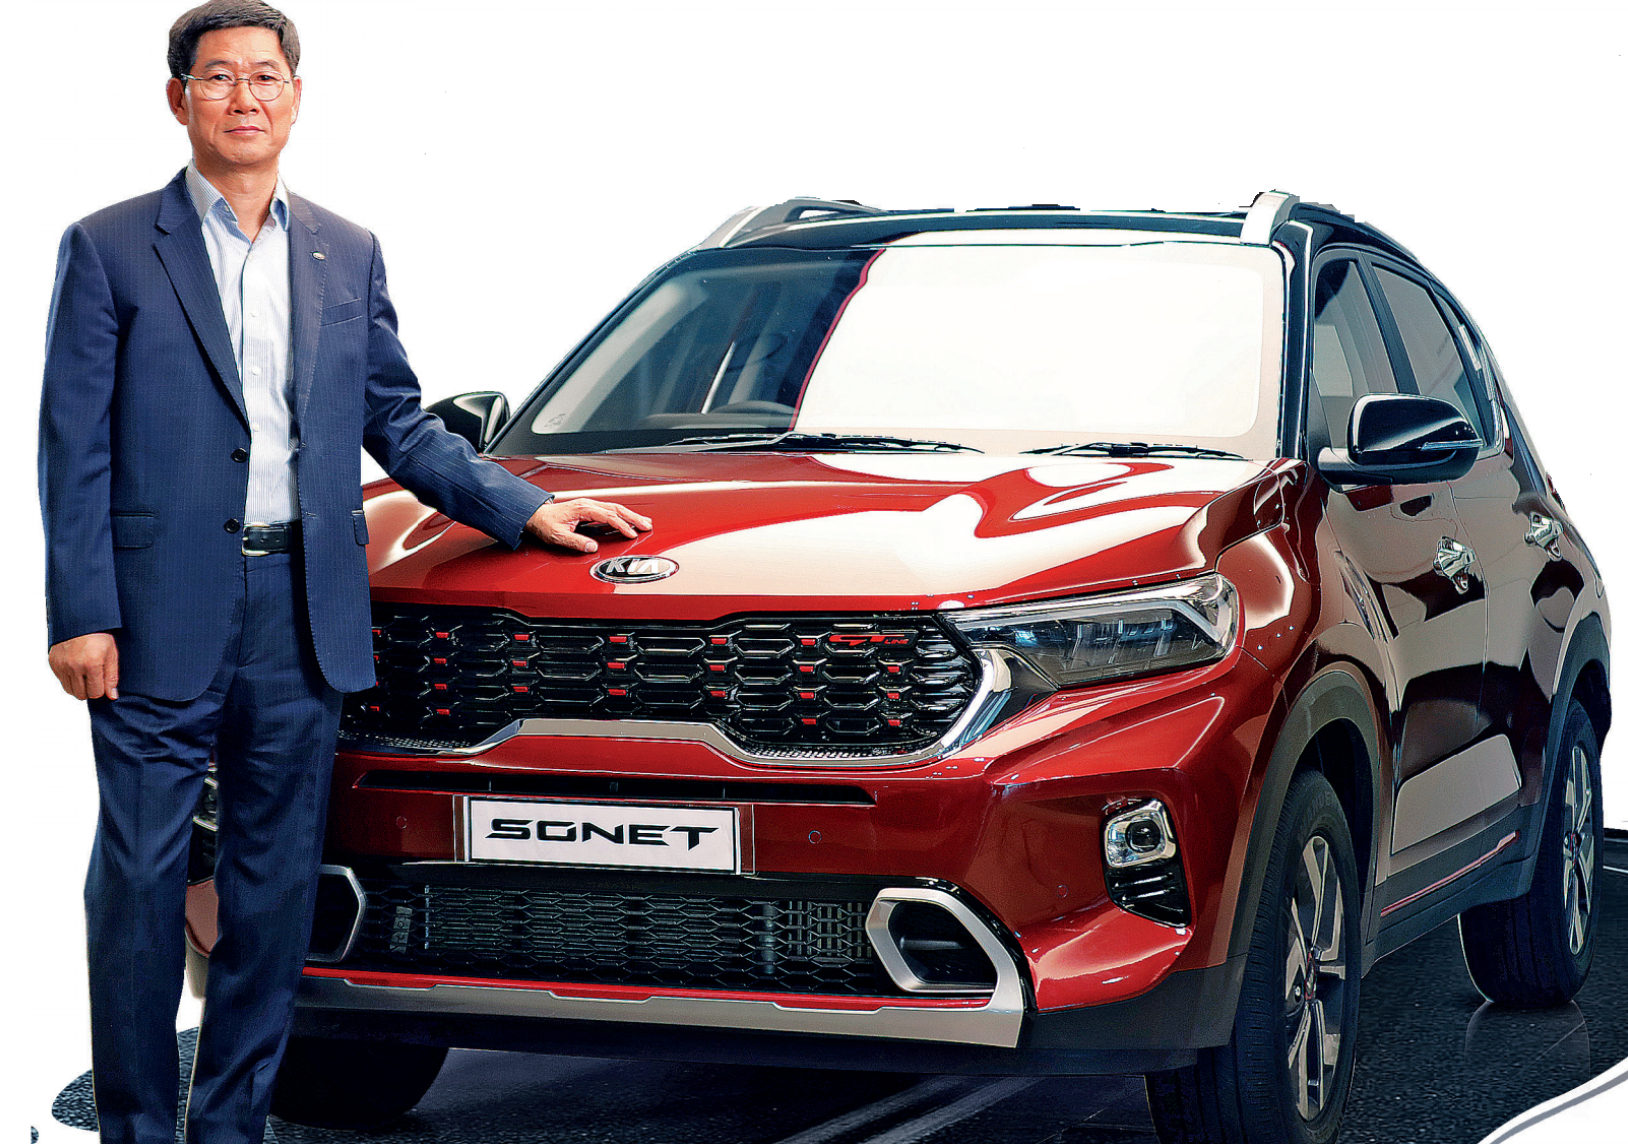 The inside story of Kia Motors' smooth drive into India's competitive auto market